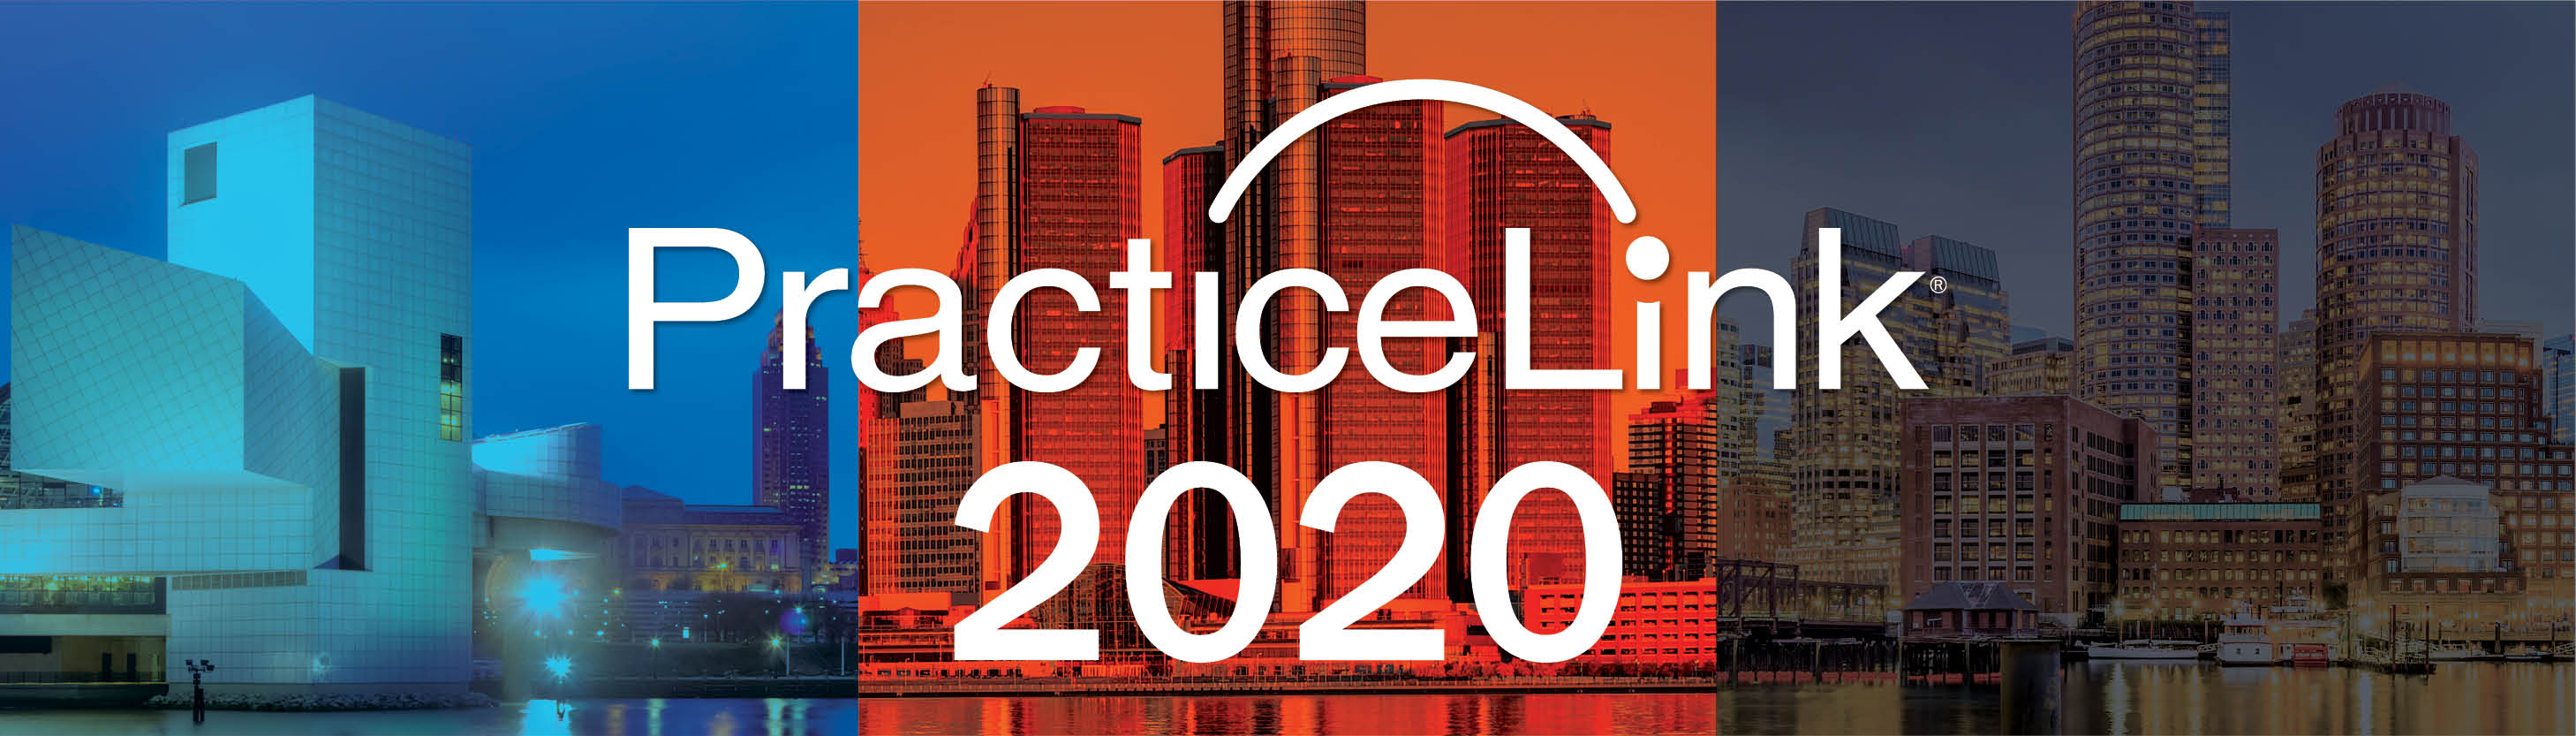 PracticeLink 2020 Cleveland Detroit Boston